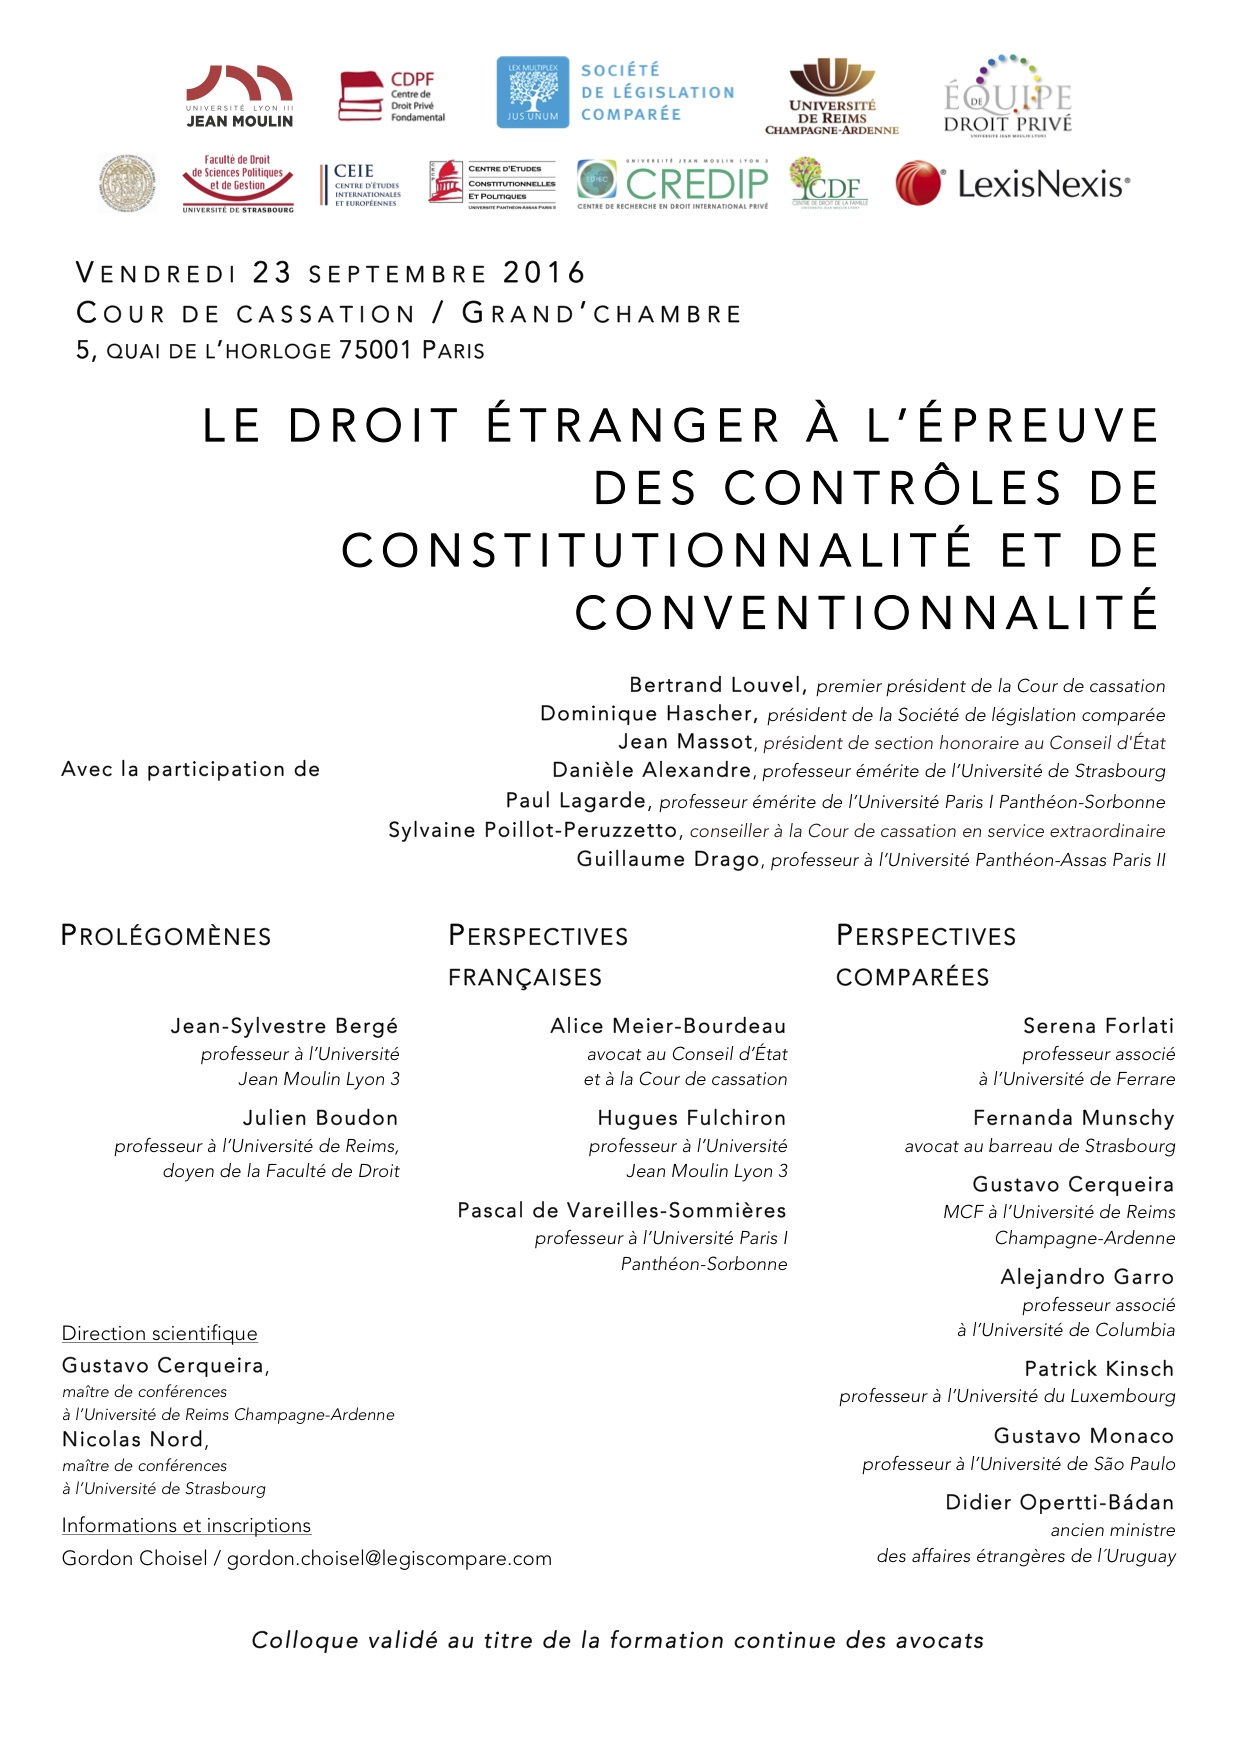 Affiche - Colloque du 23 septembre 2016